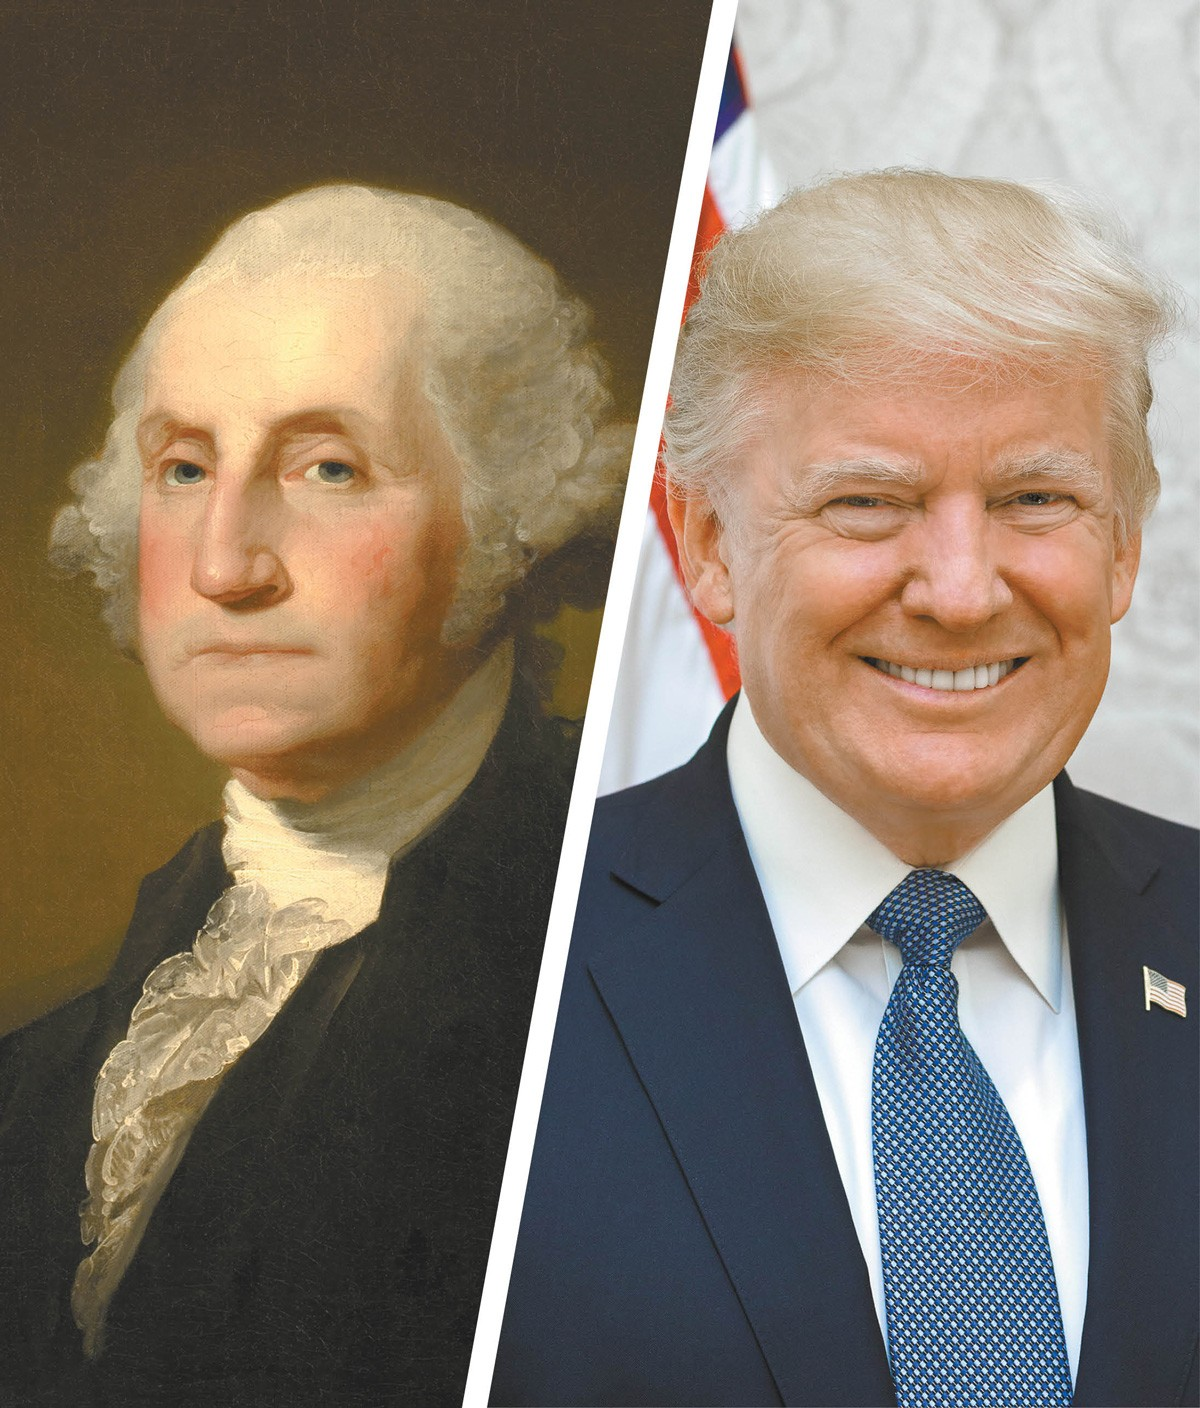 George Washington helped to defuse a potential uprising against Congress while Donald Trump stoked one.